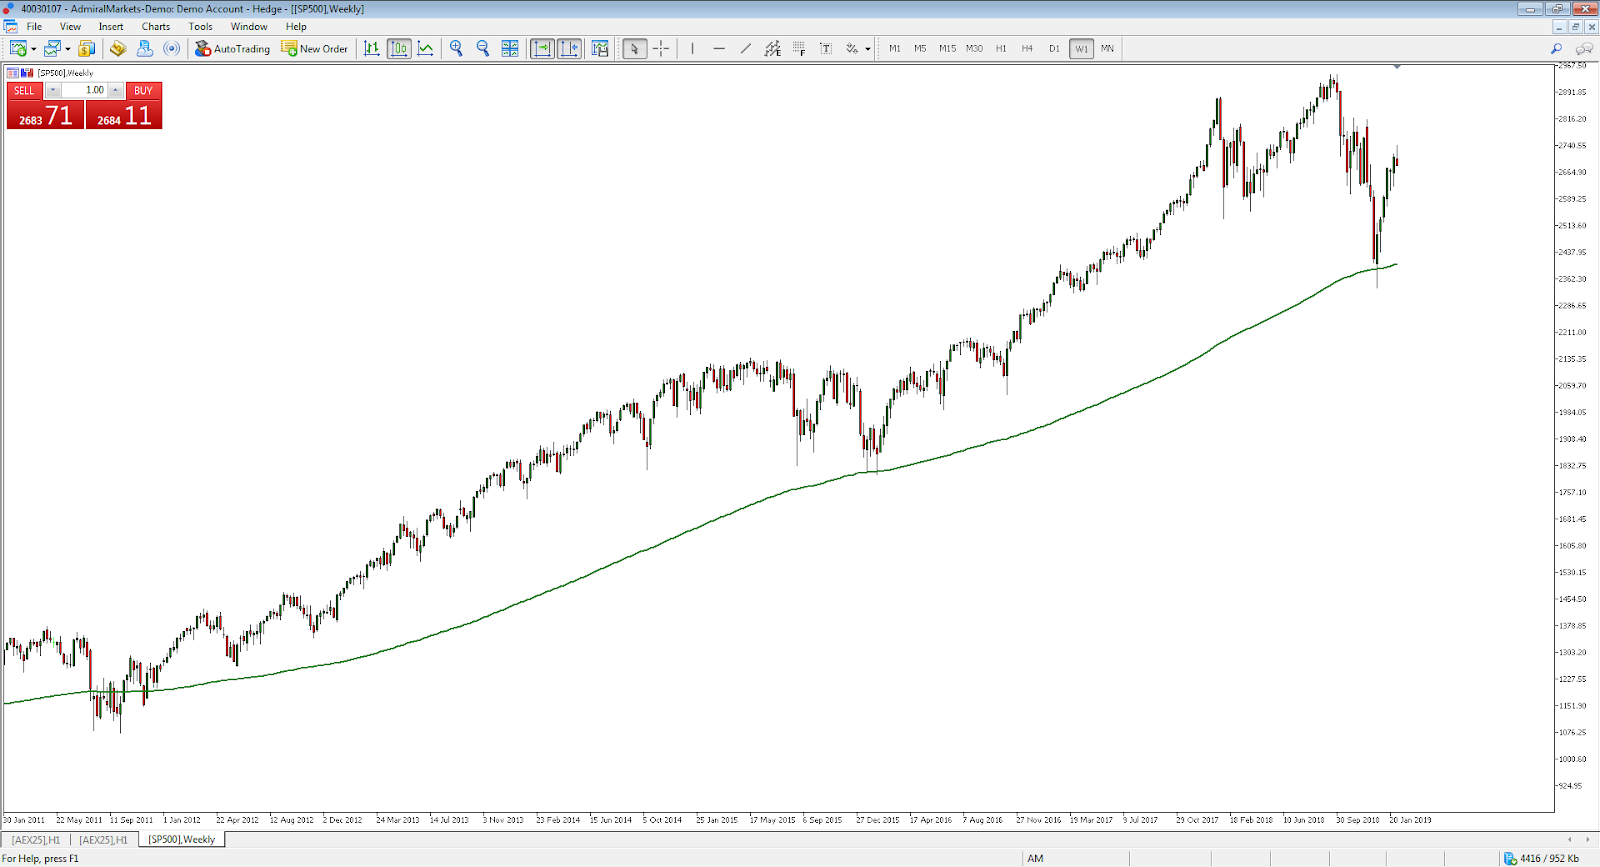 Long term SP500 CFD index chart